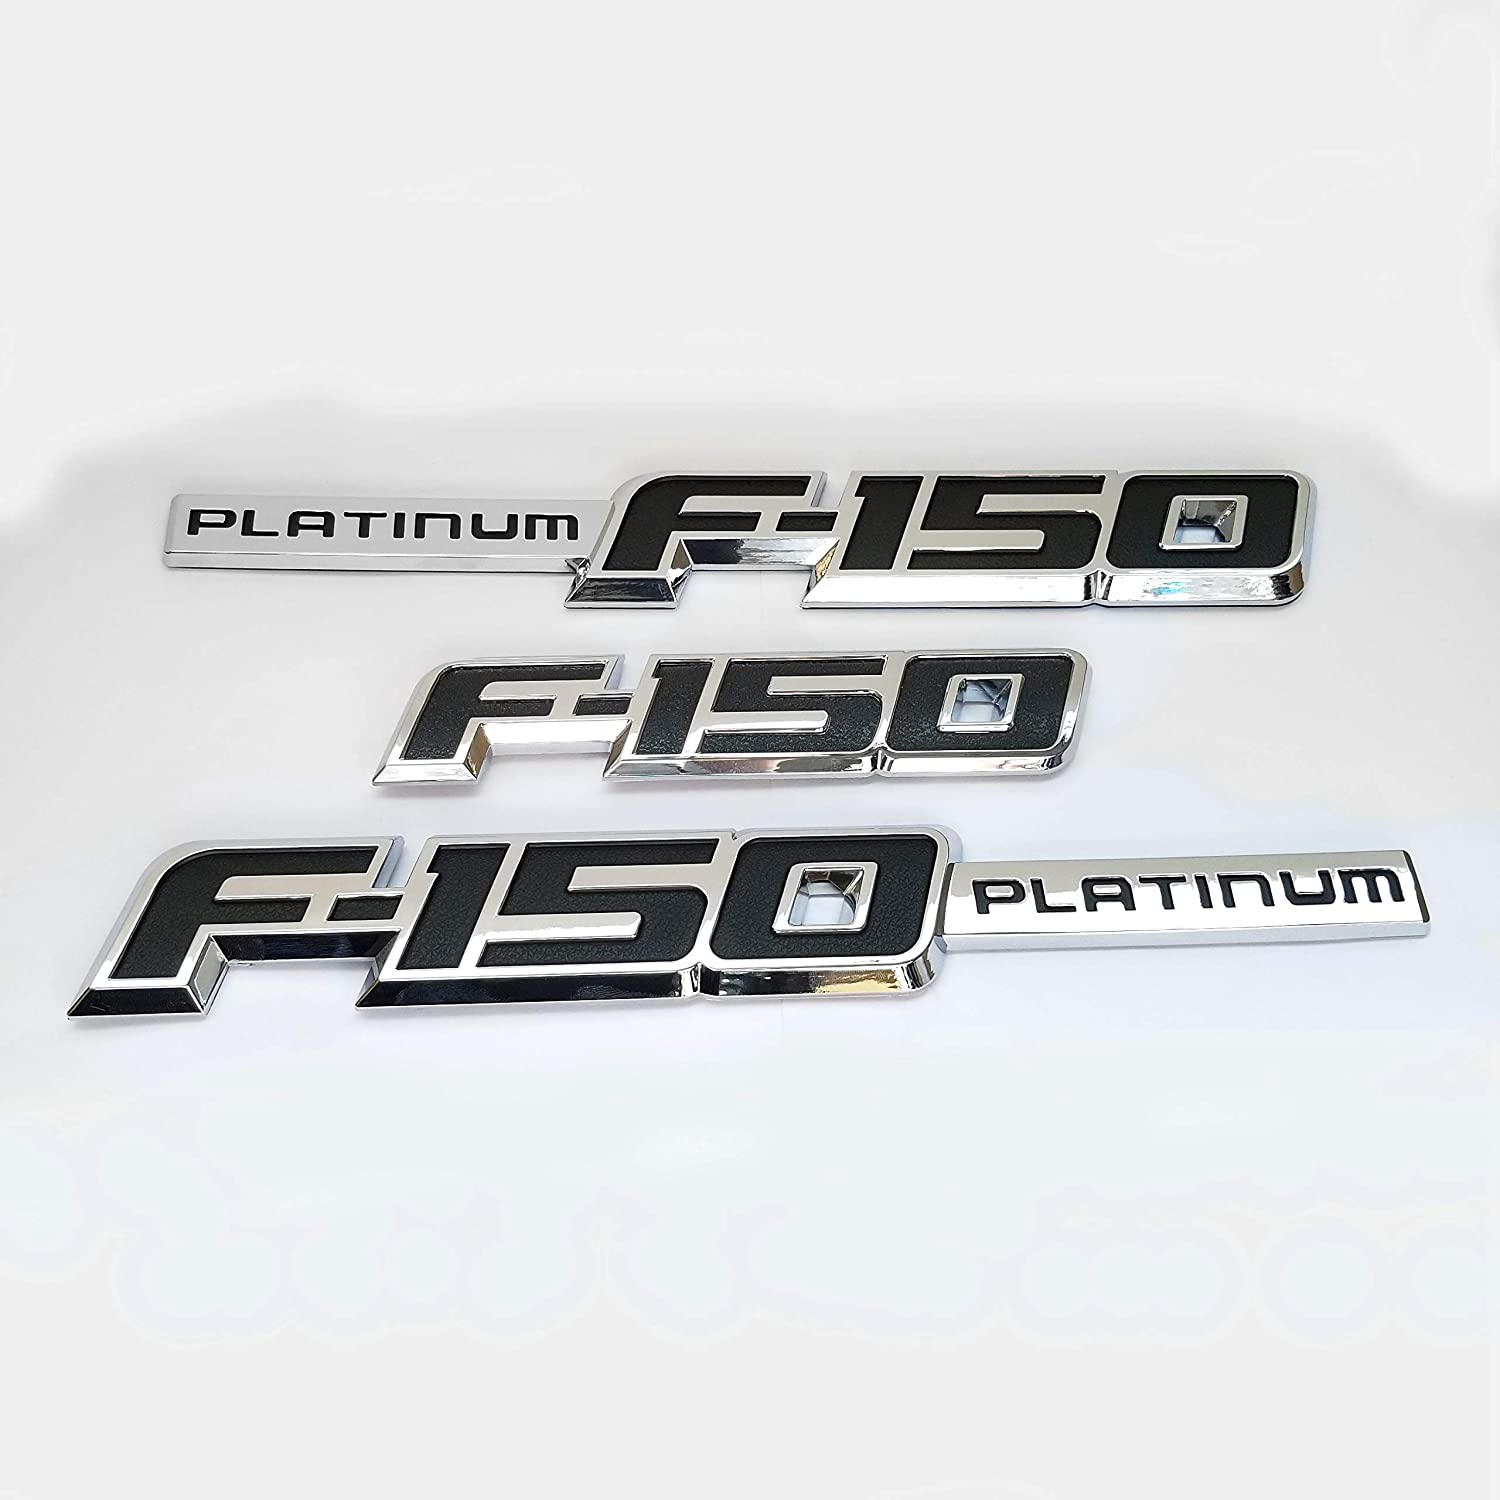 3pcs OEM Chrome Black F-150 Platinum Badge Side Fender F-150 Rear Tailgate Emblem 3D Nameplate Replacement for F150 Origianl Size Genuine Parts